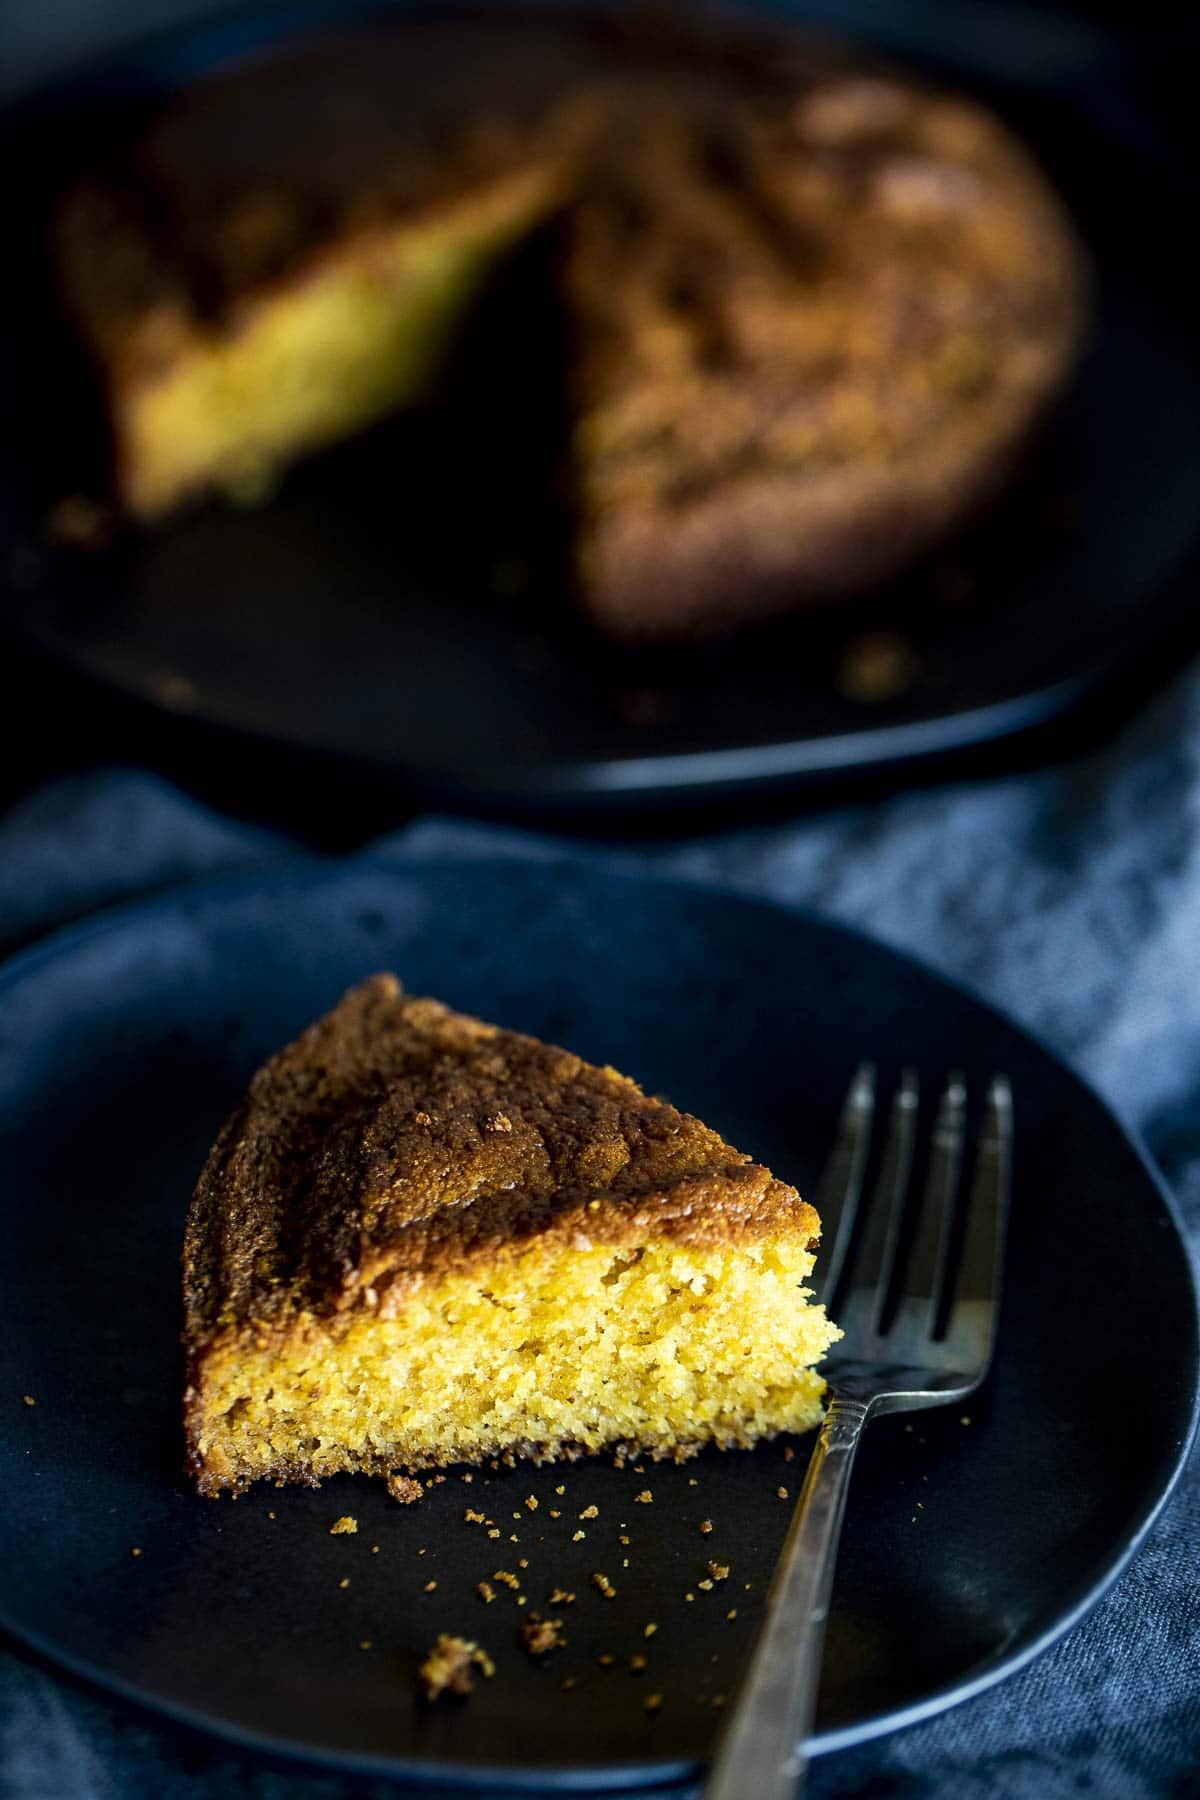 A slice of cornbread on a black plate with a fork.